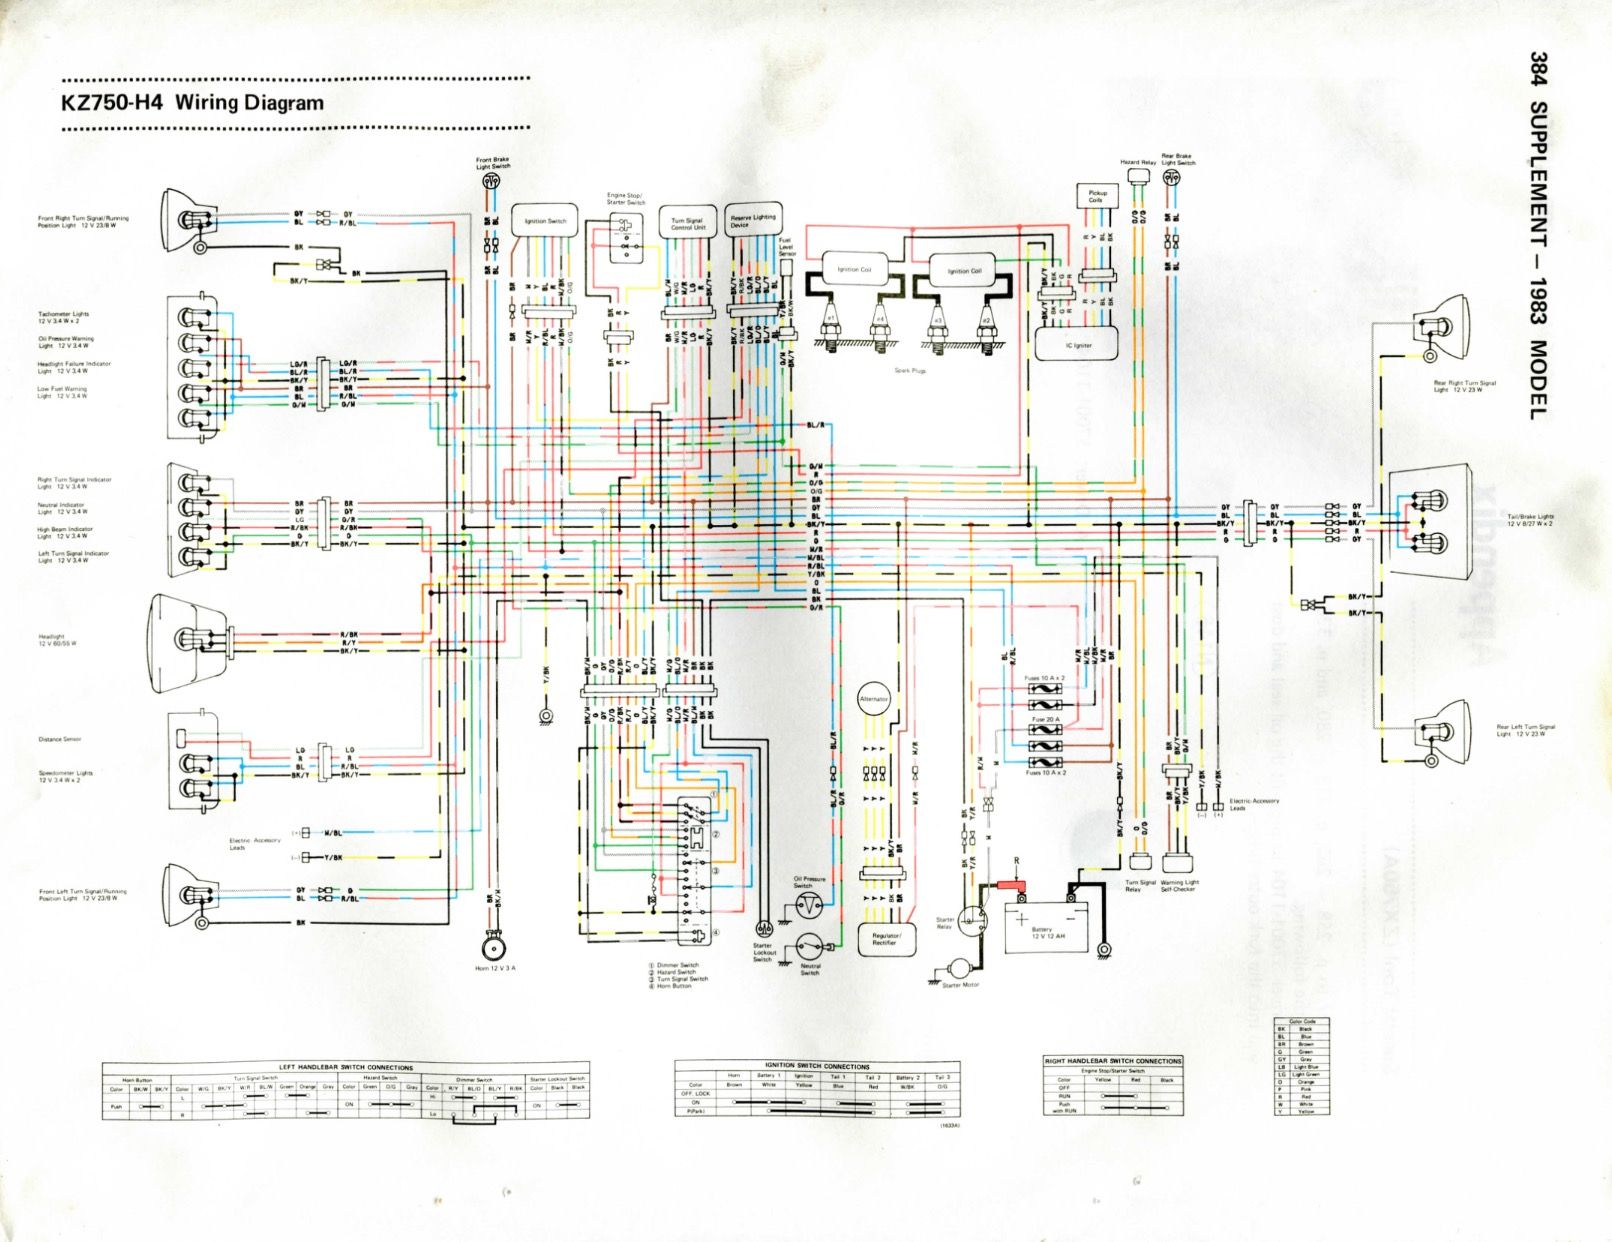 medium resolution of kawasaki kz750 wiring diagram